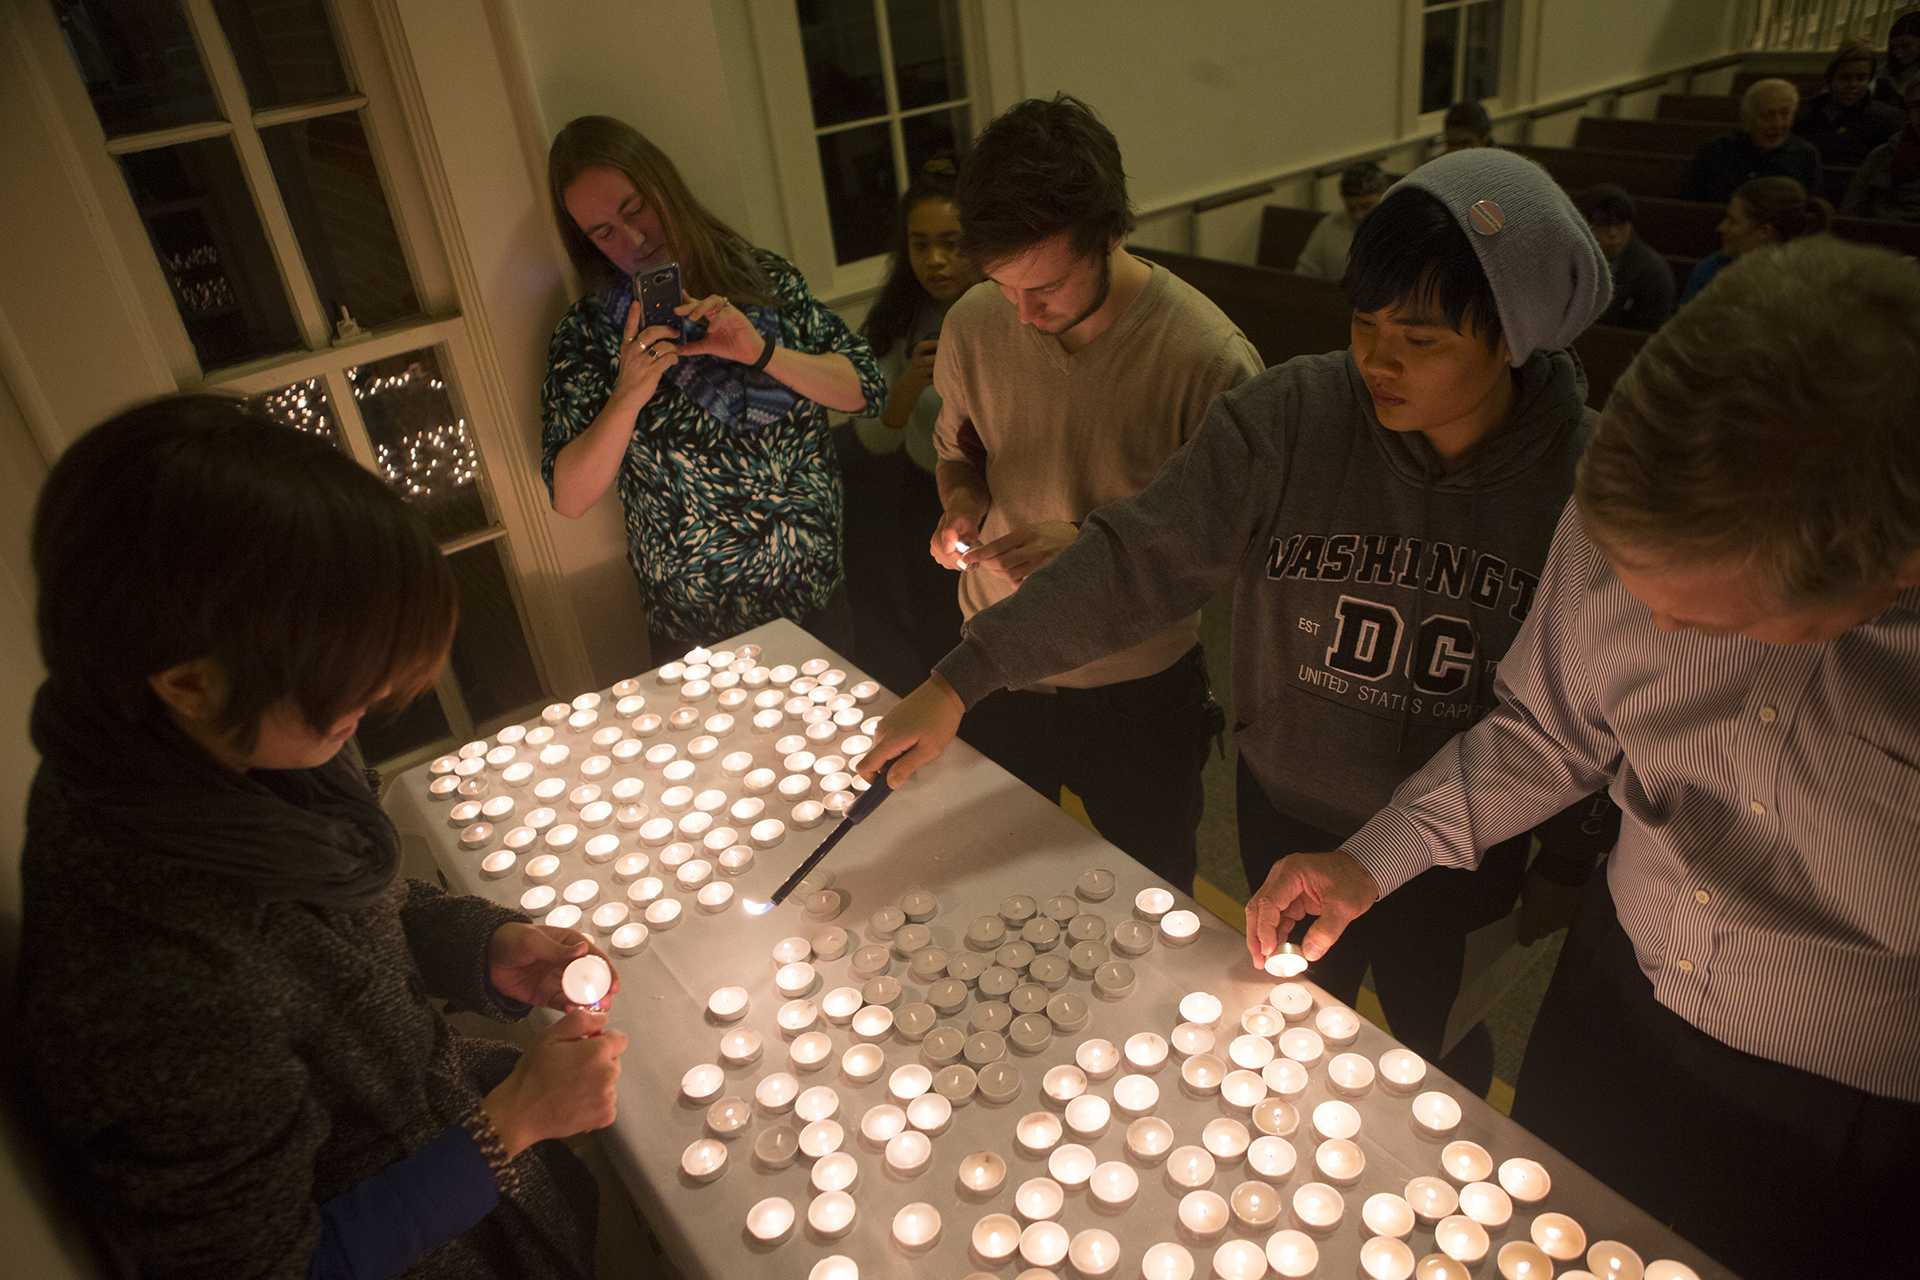 Attendees light candles during the Trans Day of Remembrance Vigil in Danforth Chapel on Thursday, Nov. 16, 2017. The event included the reading of 284 murdered trans peoples' names. (Lily Smith/The Daily Iowan)